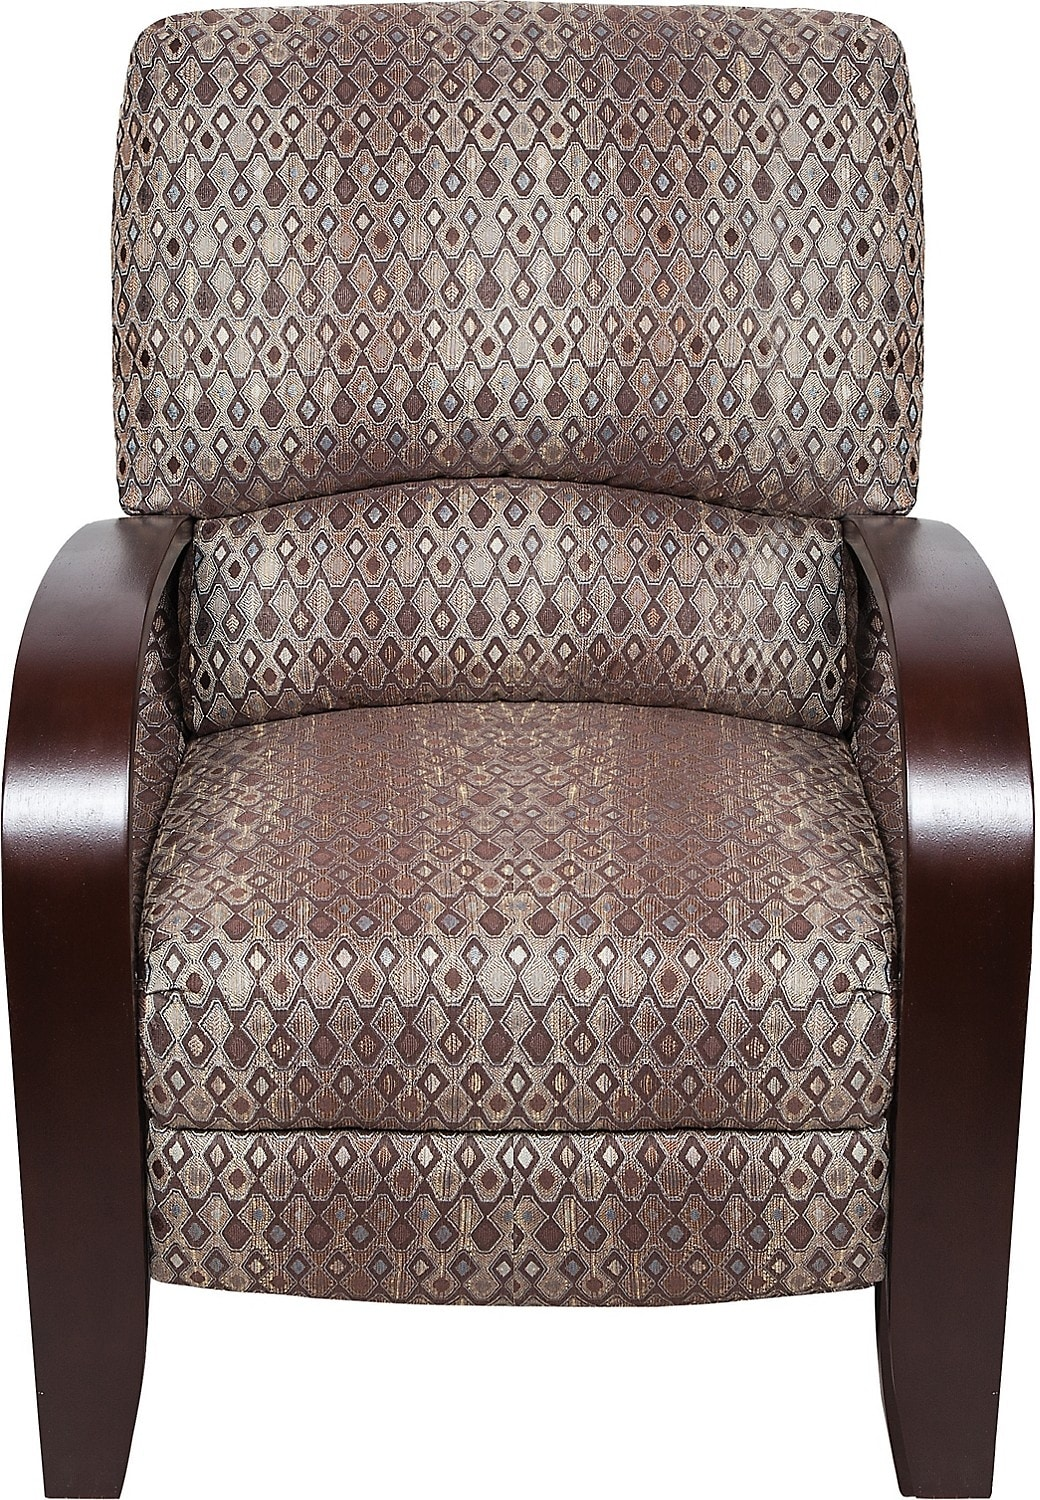 Accent Recliner Chairs Aaron Fabric Accent Reclining Chair The Brick